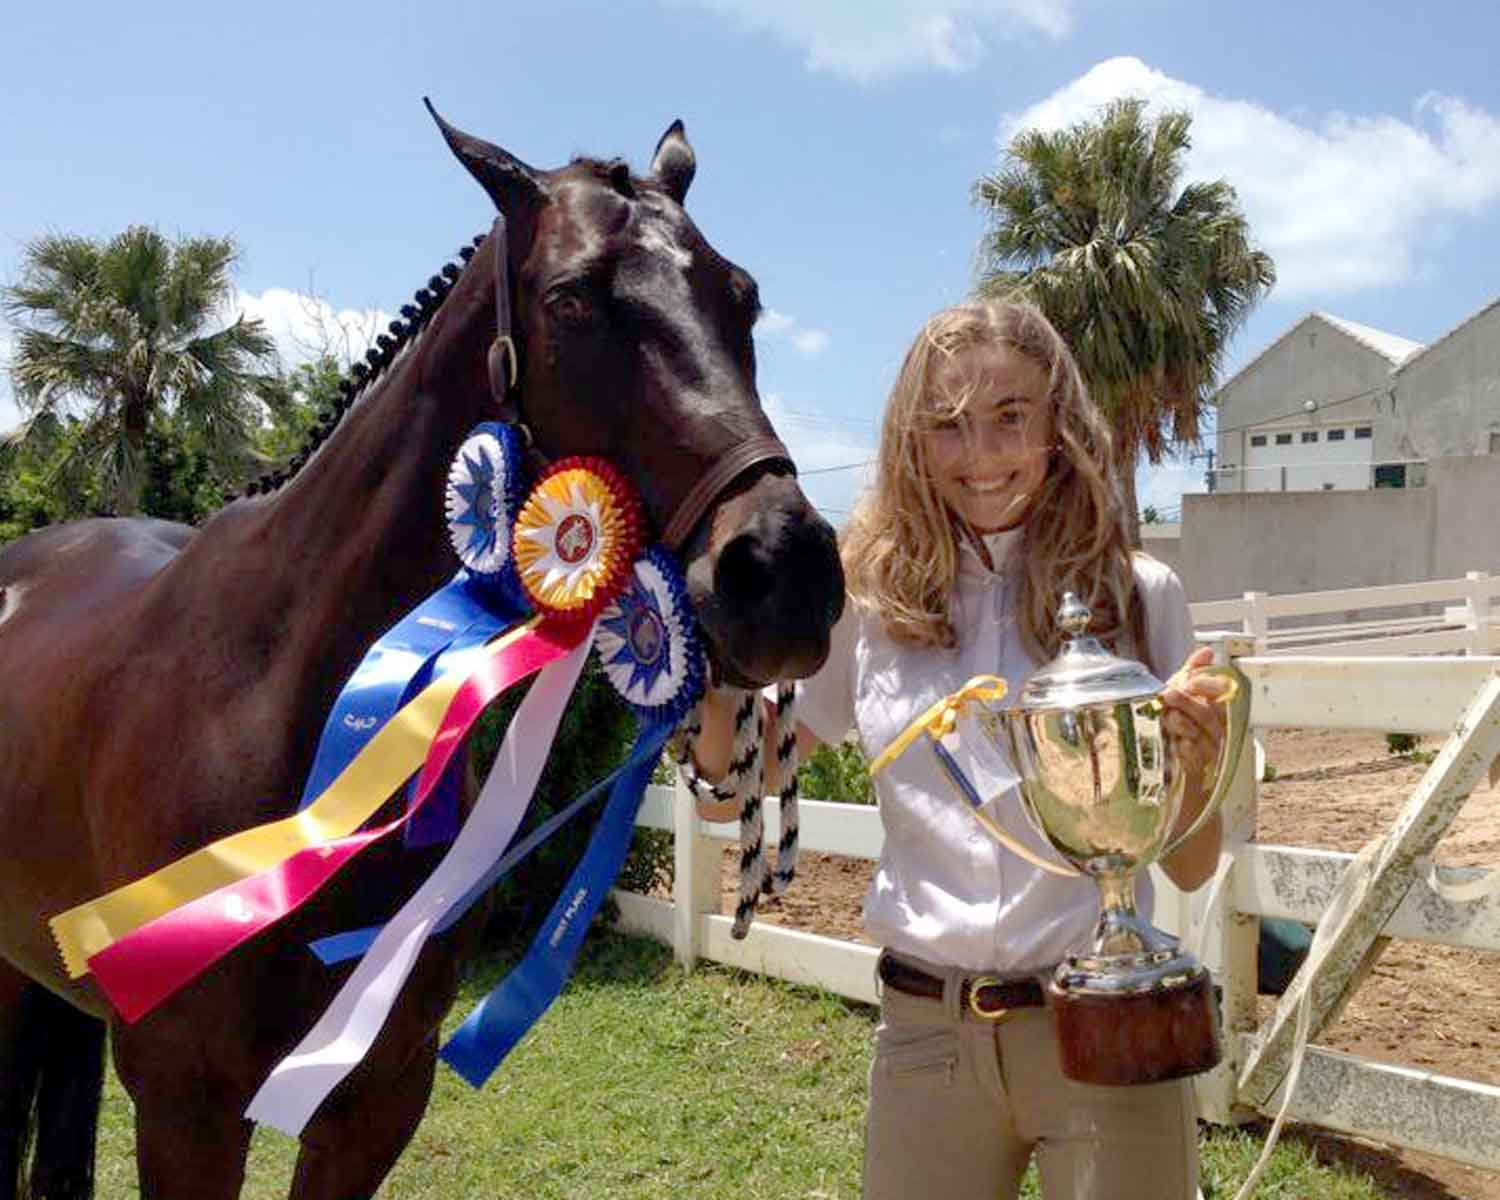 Second chance for both horse and rider